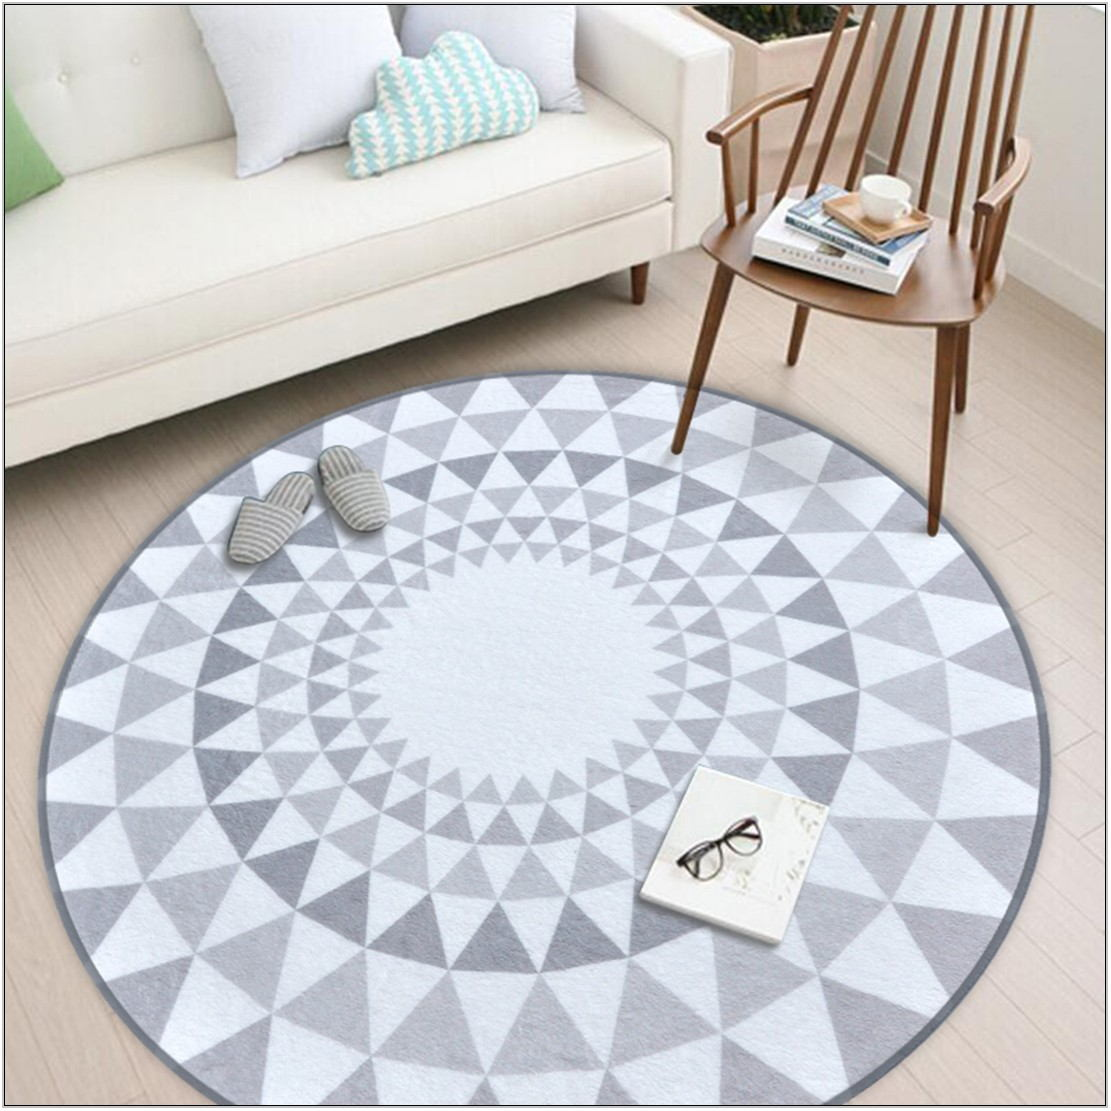 Round Gray Rug For Living Room